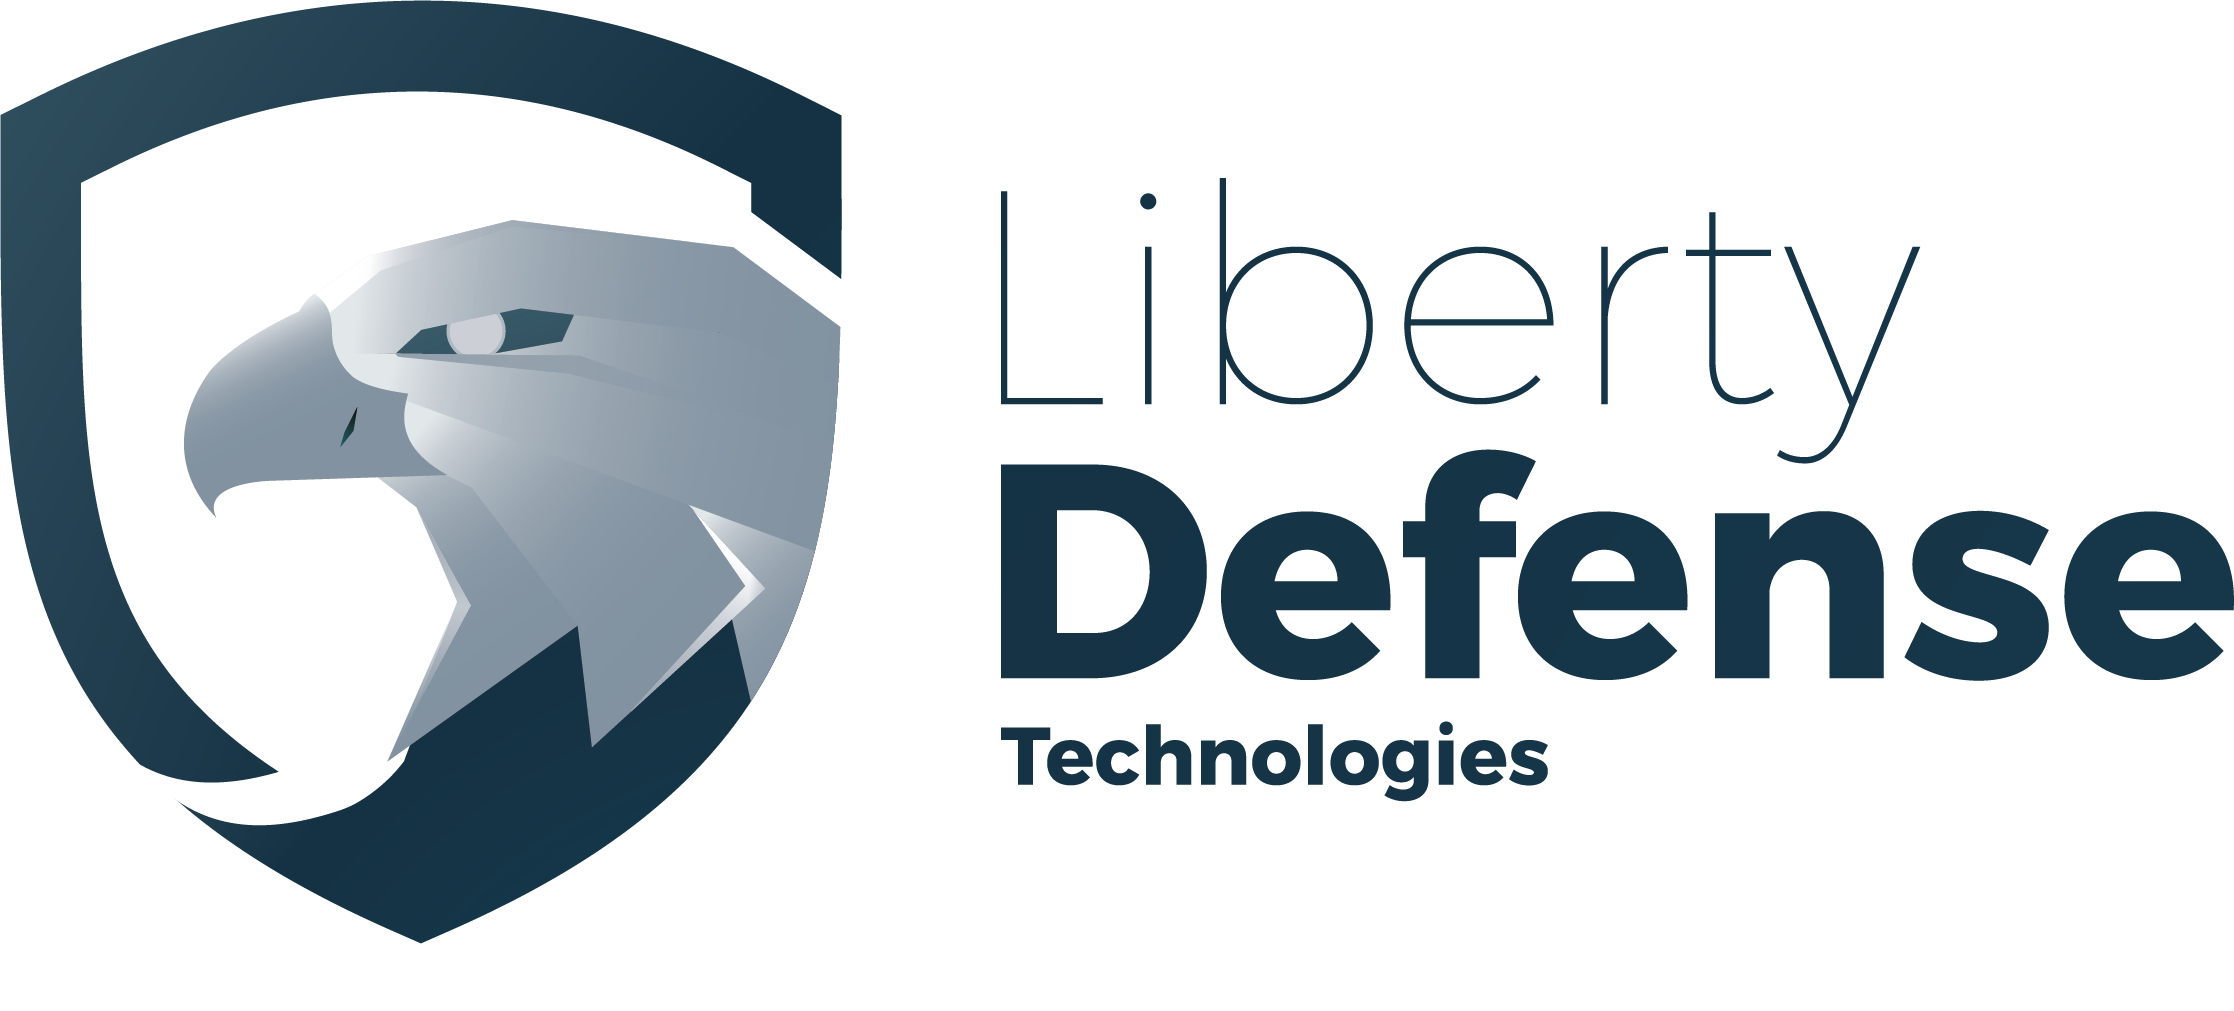 Liberty Defense Holdings Ltd.